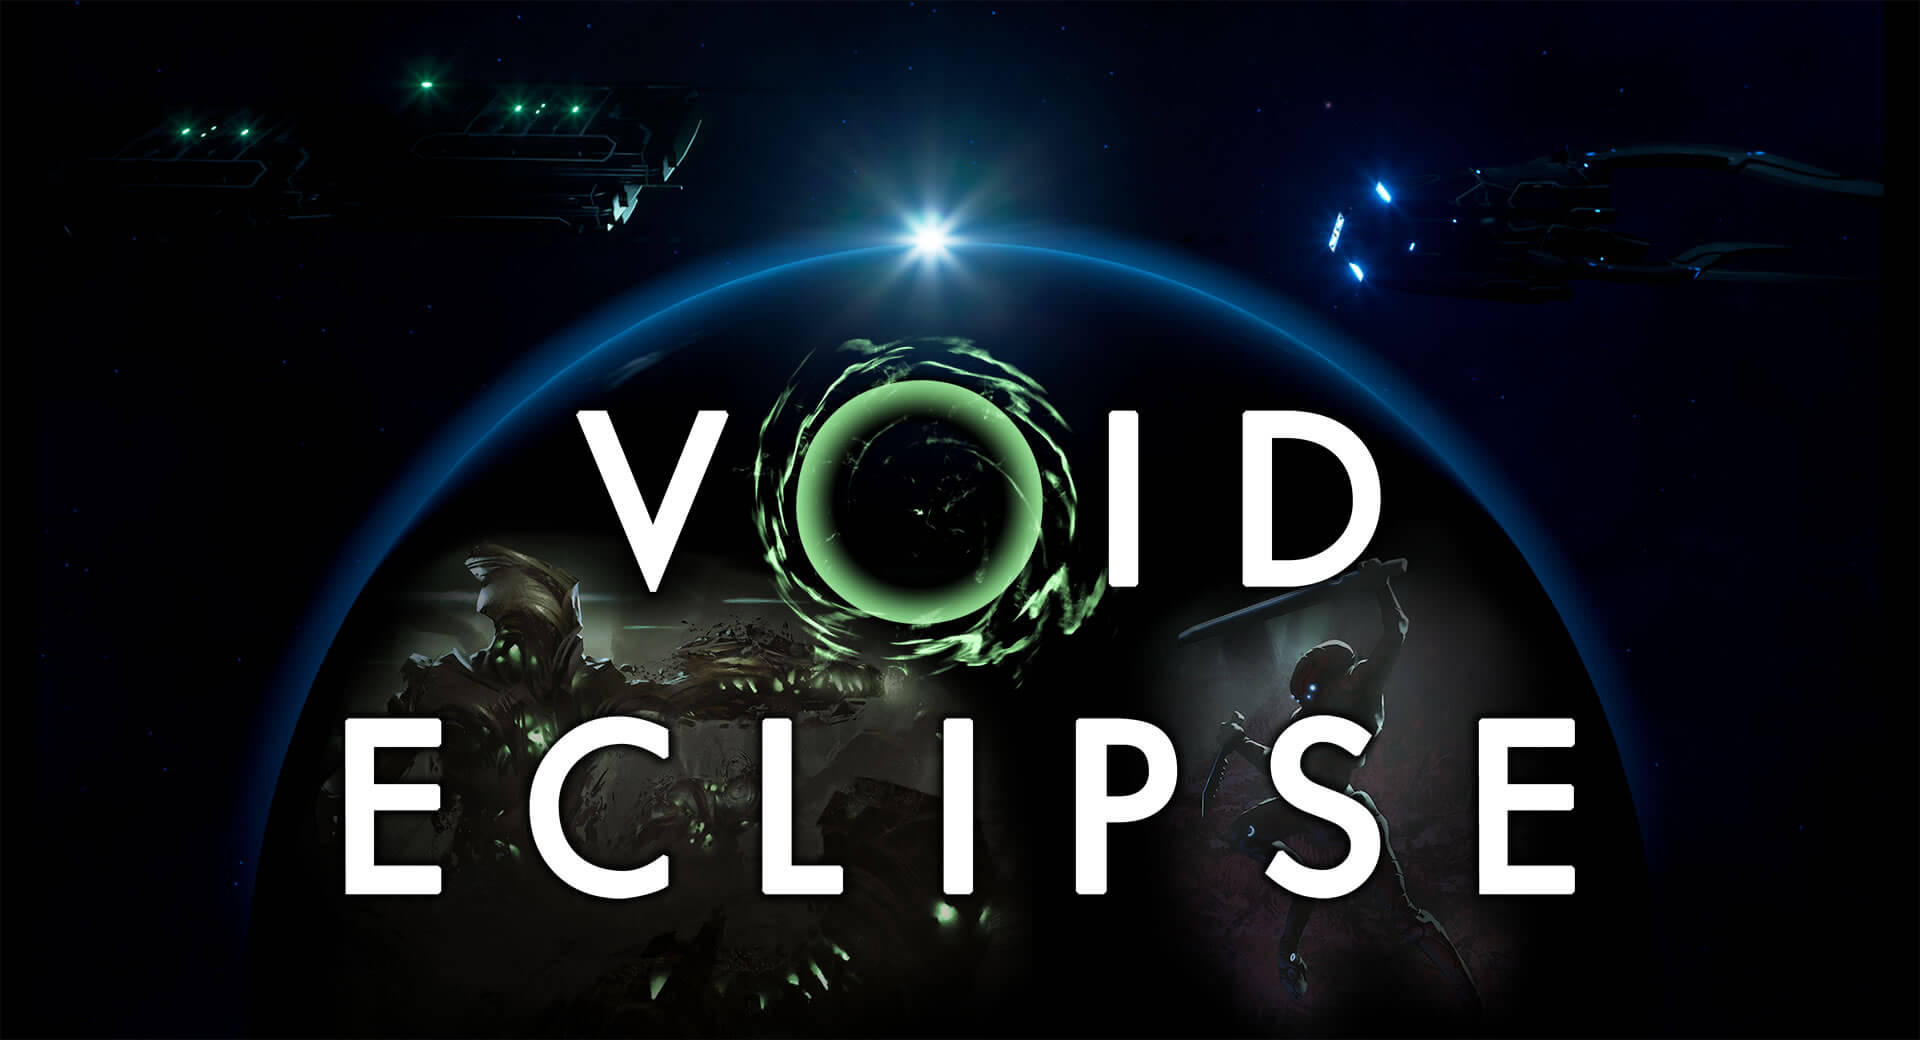 Void Eclipse